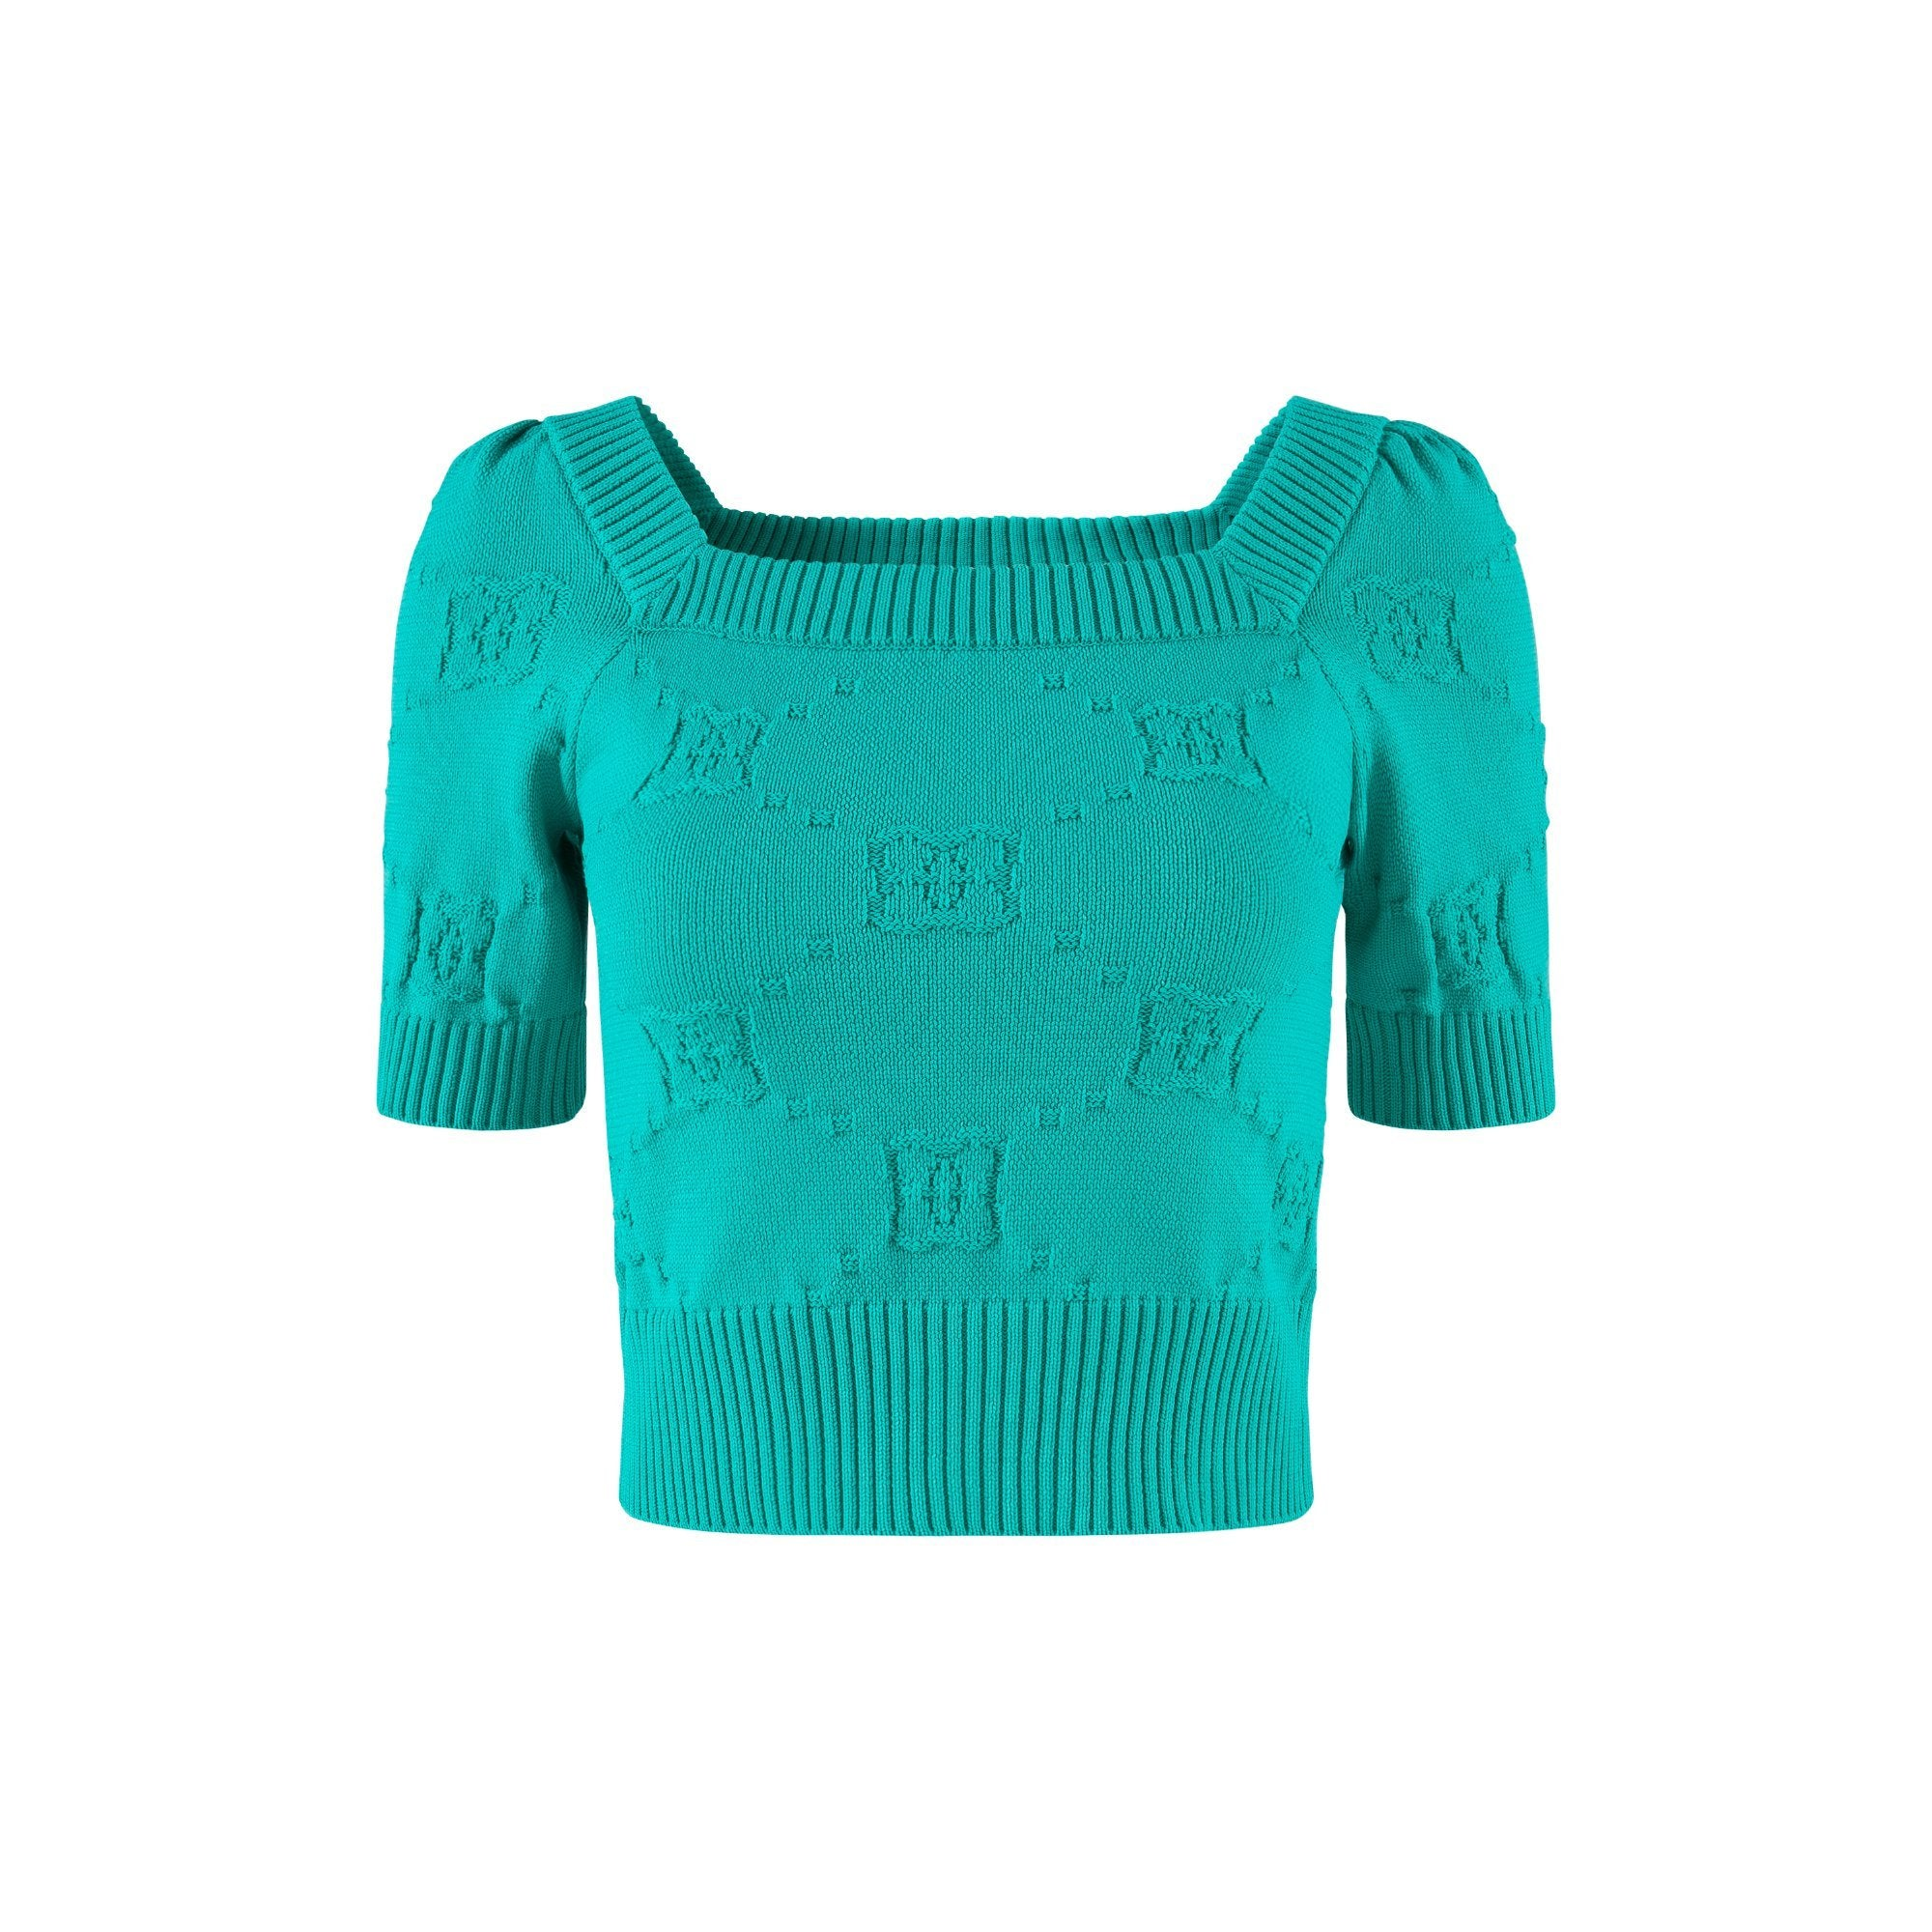 HERLIAN Green Dans La Fleur Vintage Knitted Top | MADA IN CHINA